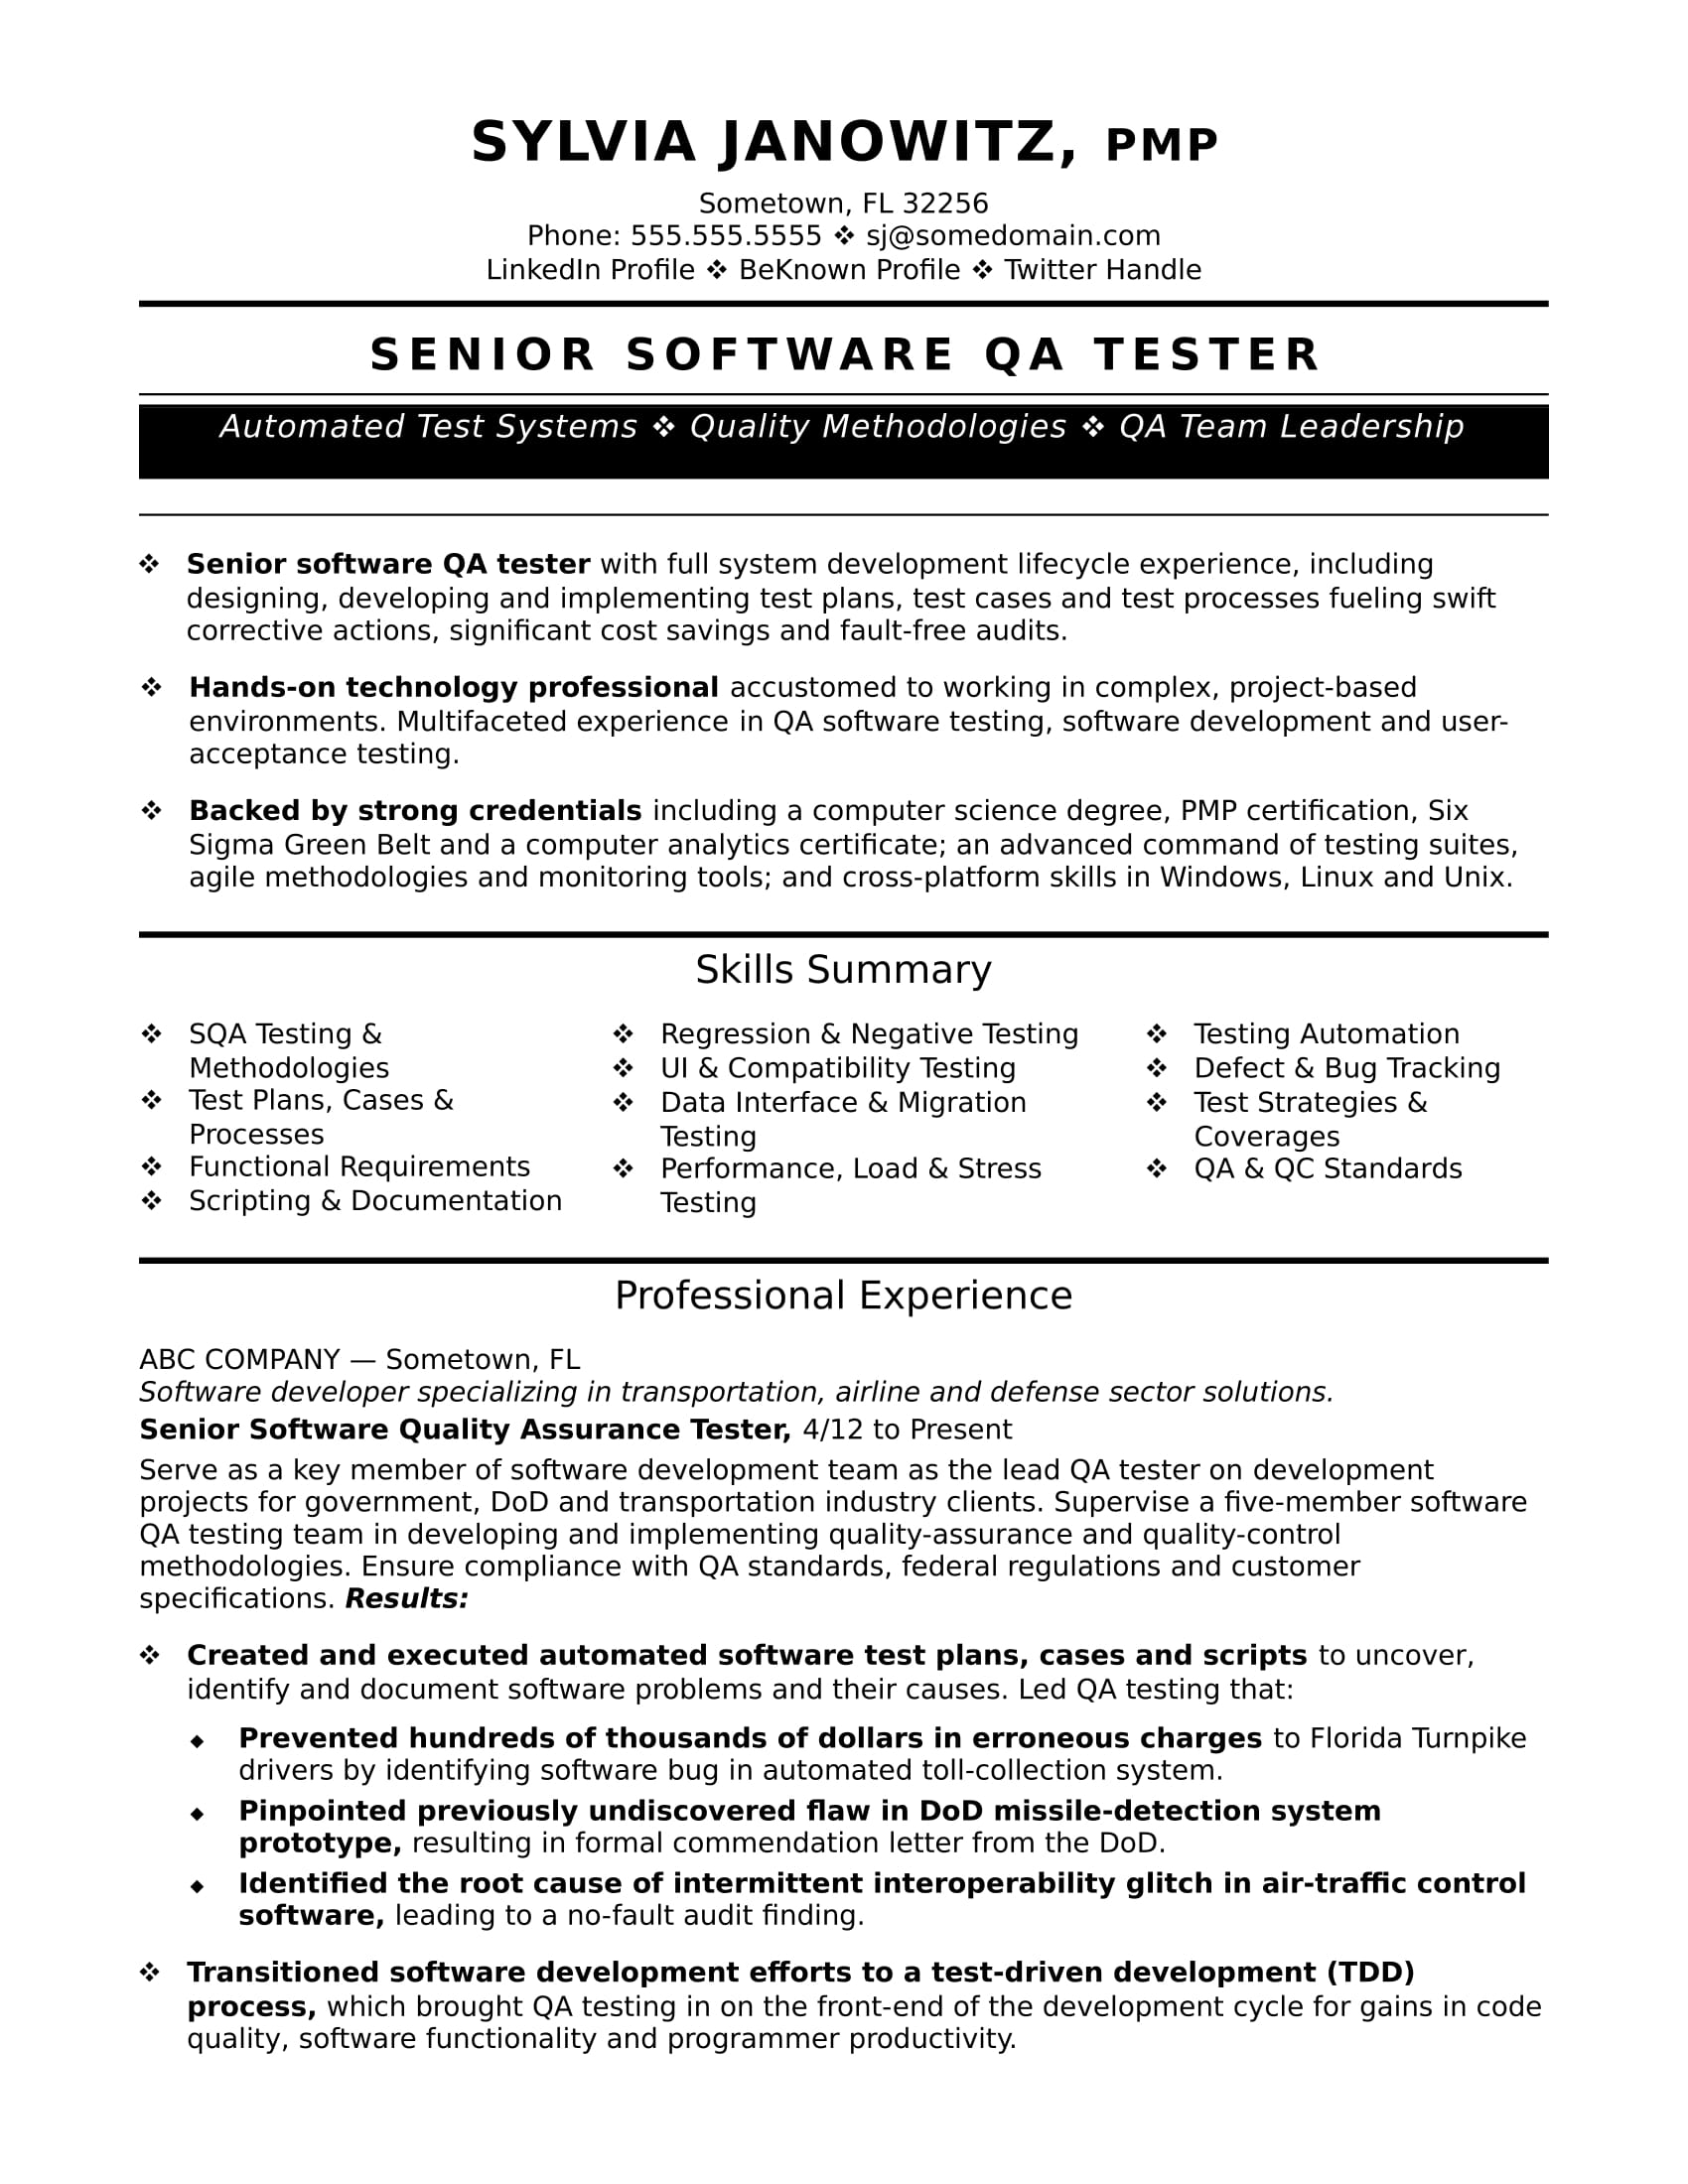 Beau Experienced QA Software Tester Resume Sample